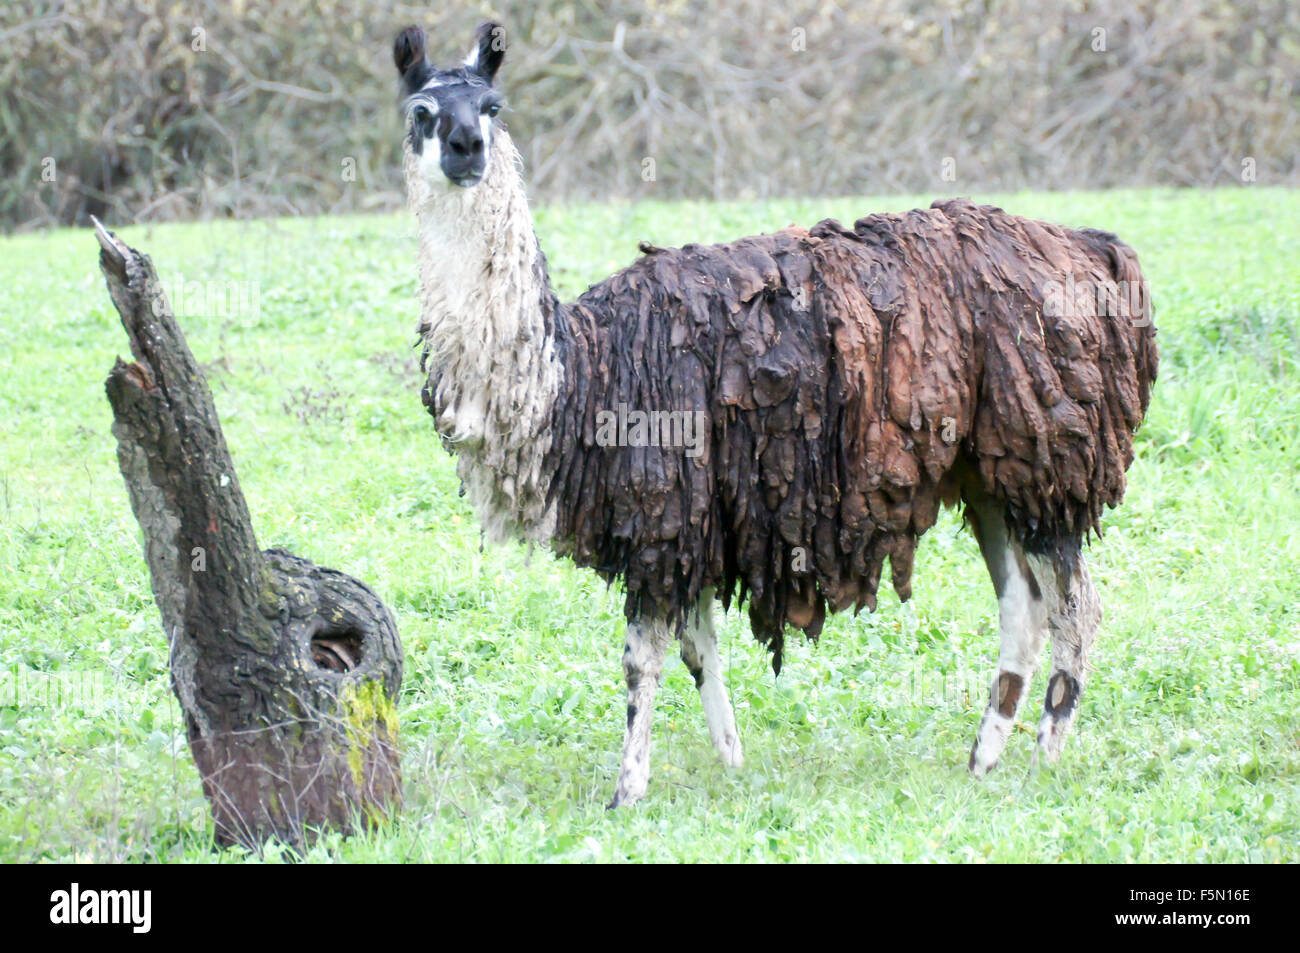 Llama (Lama glama) covered in mud grazing in the meadows. - Stock Image